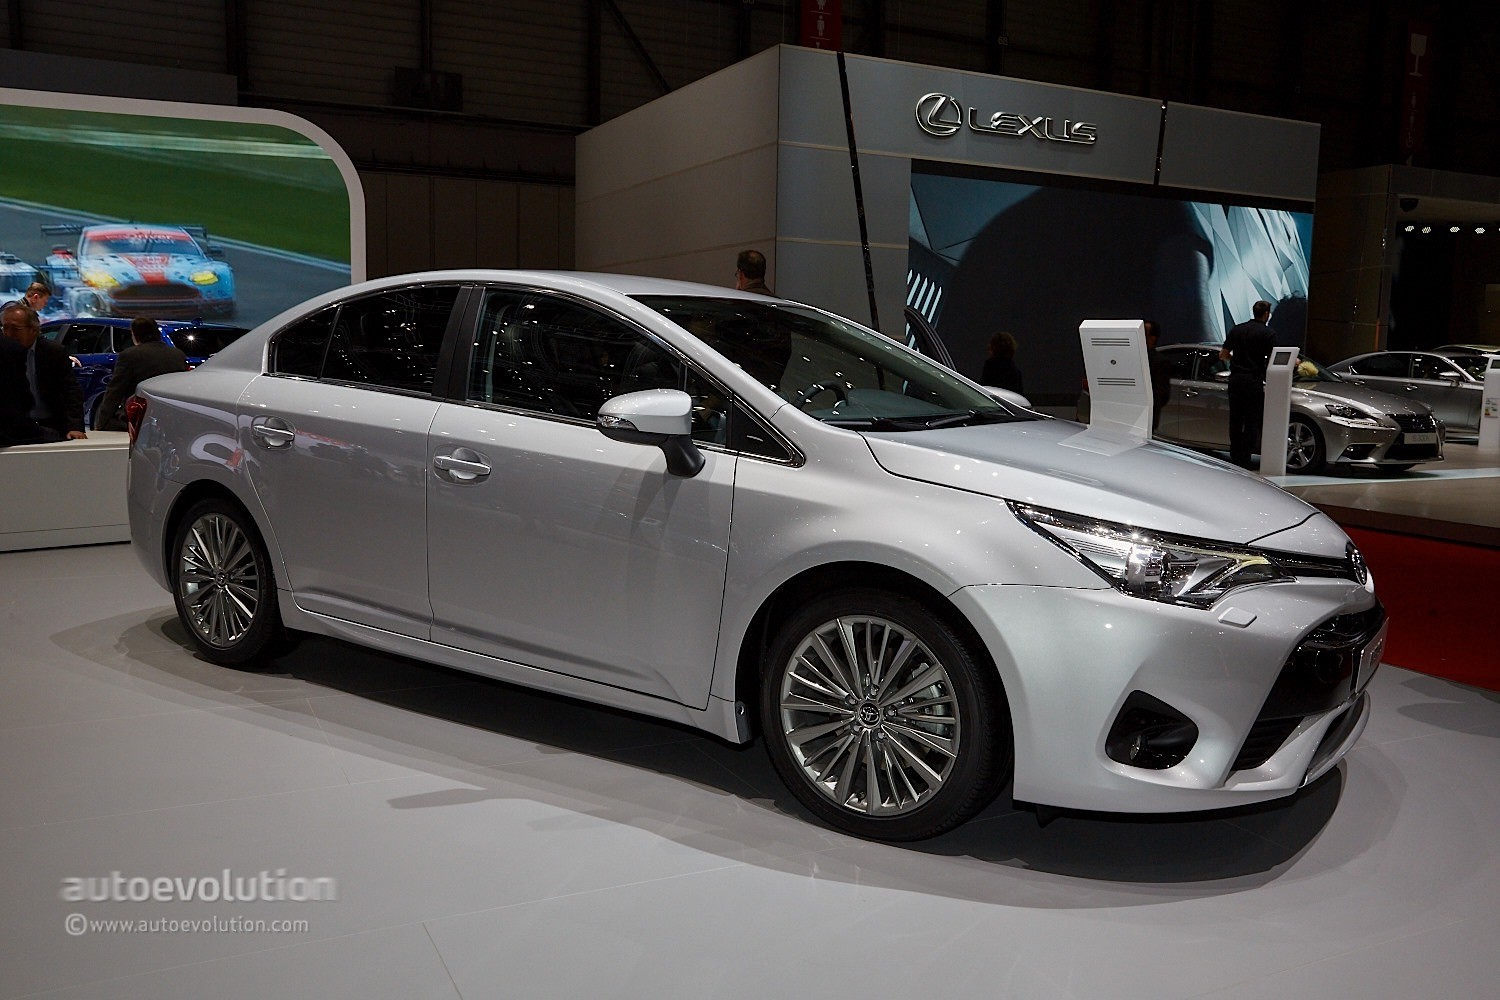 2015 Toyota Avensis Facelift Looks Sharper Than Ever In ...